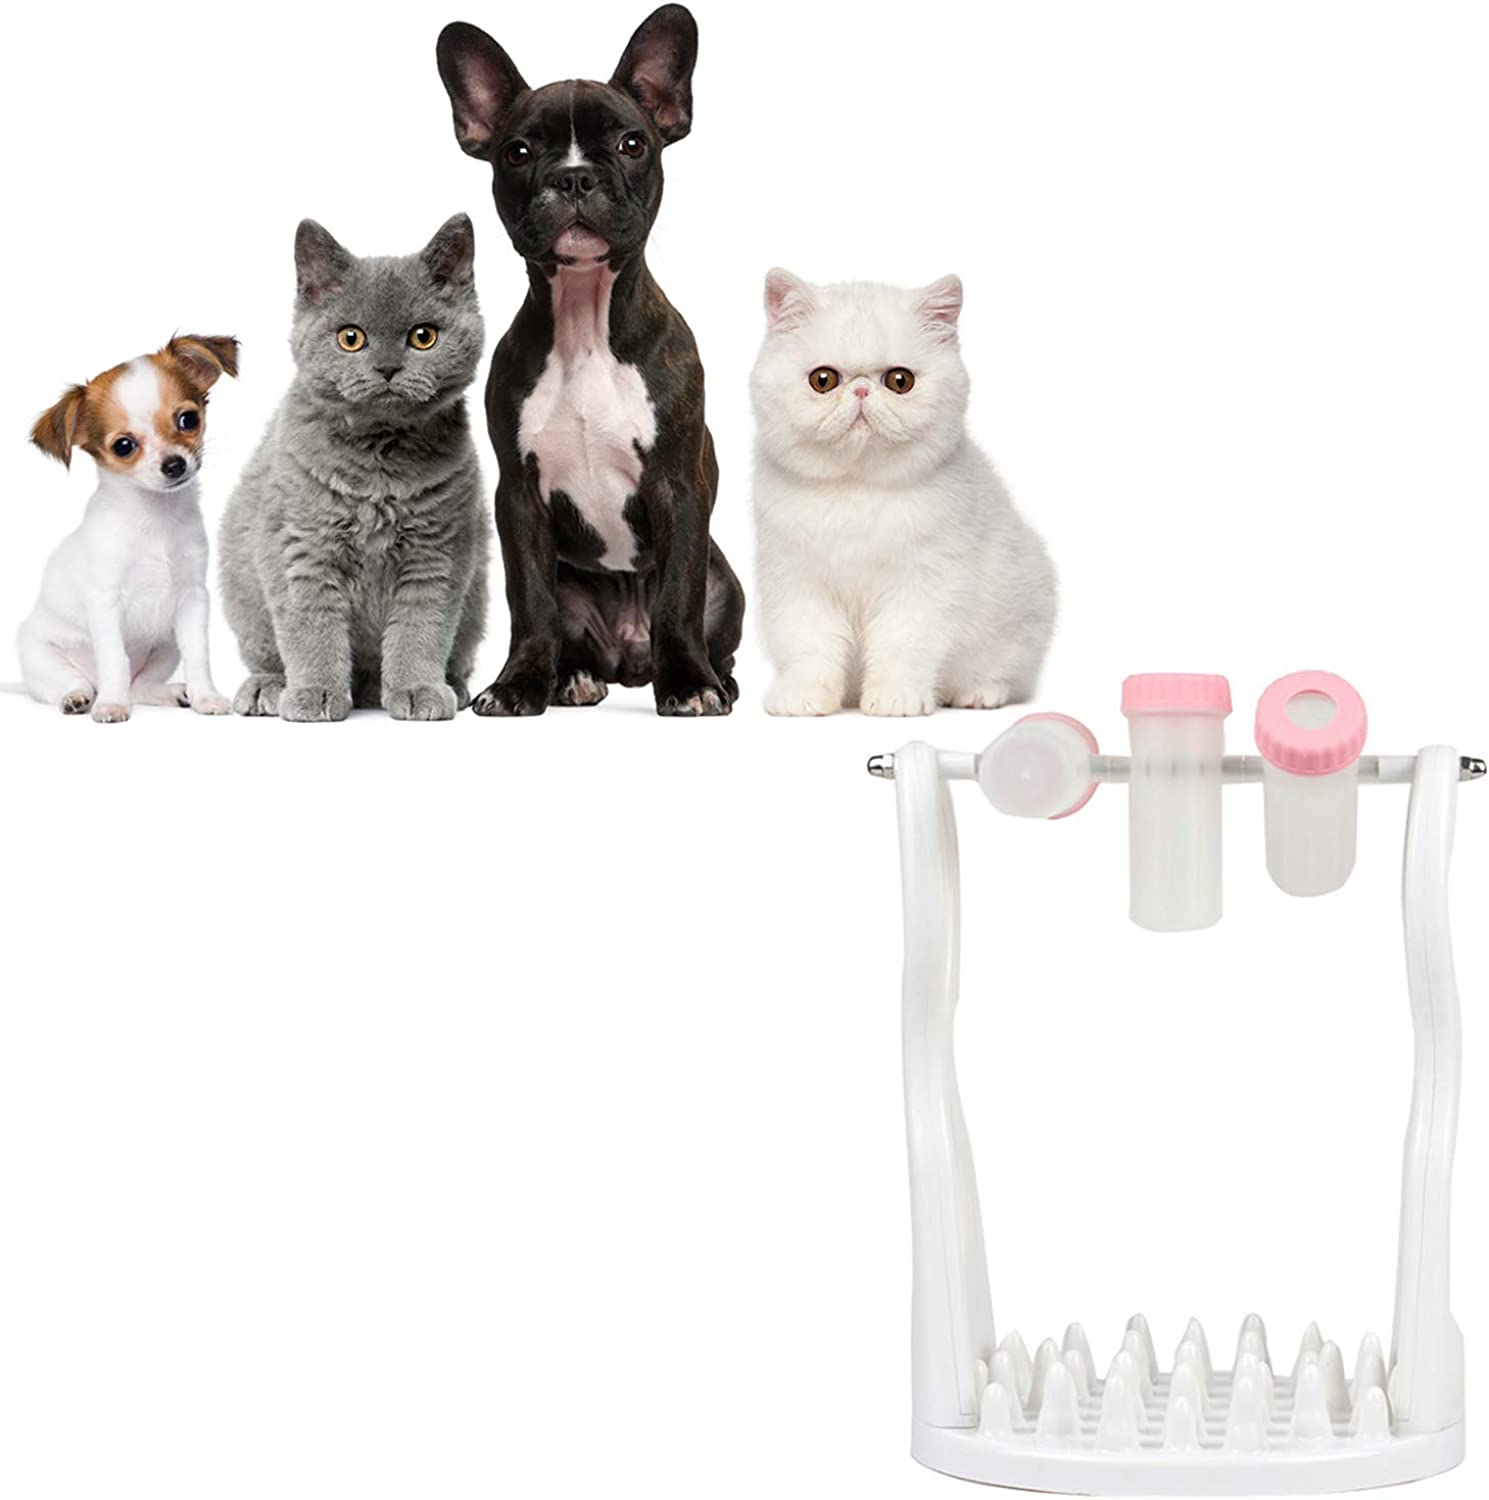 Activity Game by Spinning Bottle Funny Slow Food Feeder to Prevent Obesity Activity Game Turn Around Level 2 Gift for Pets with Bowl,Pink